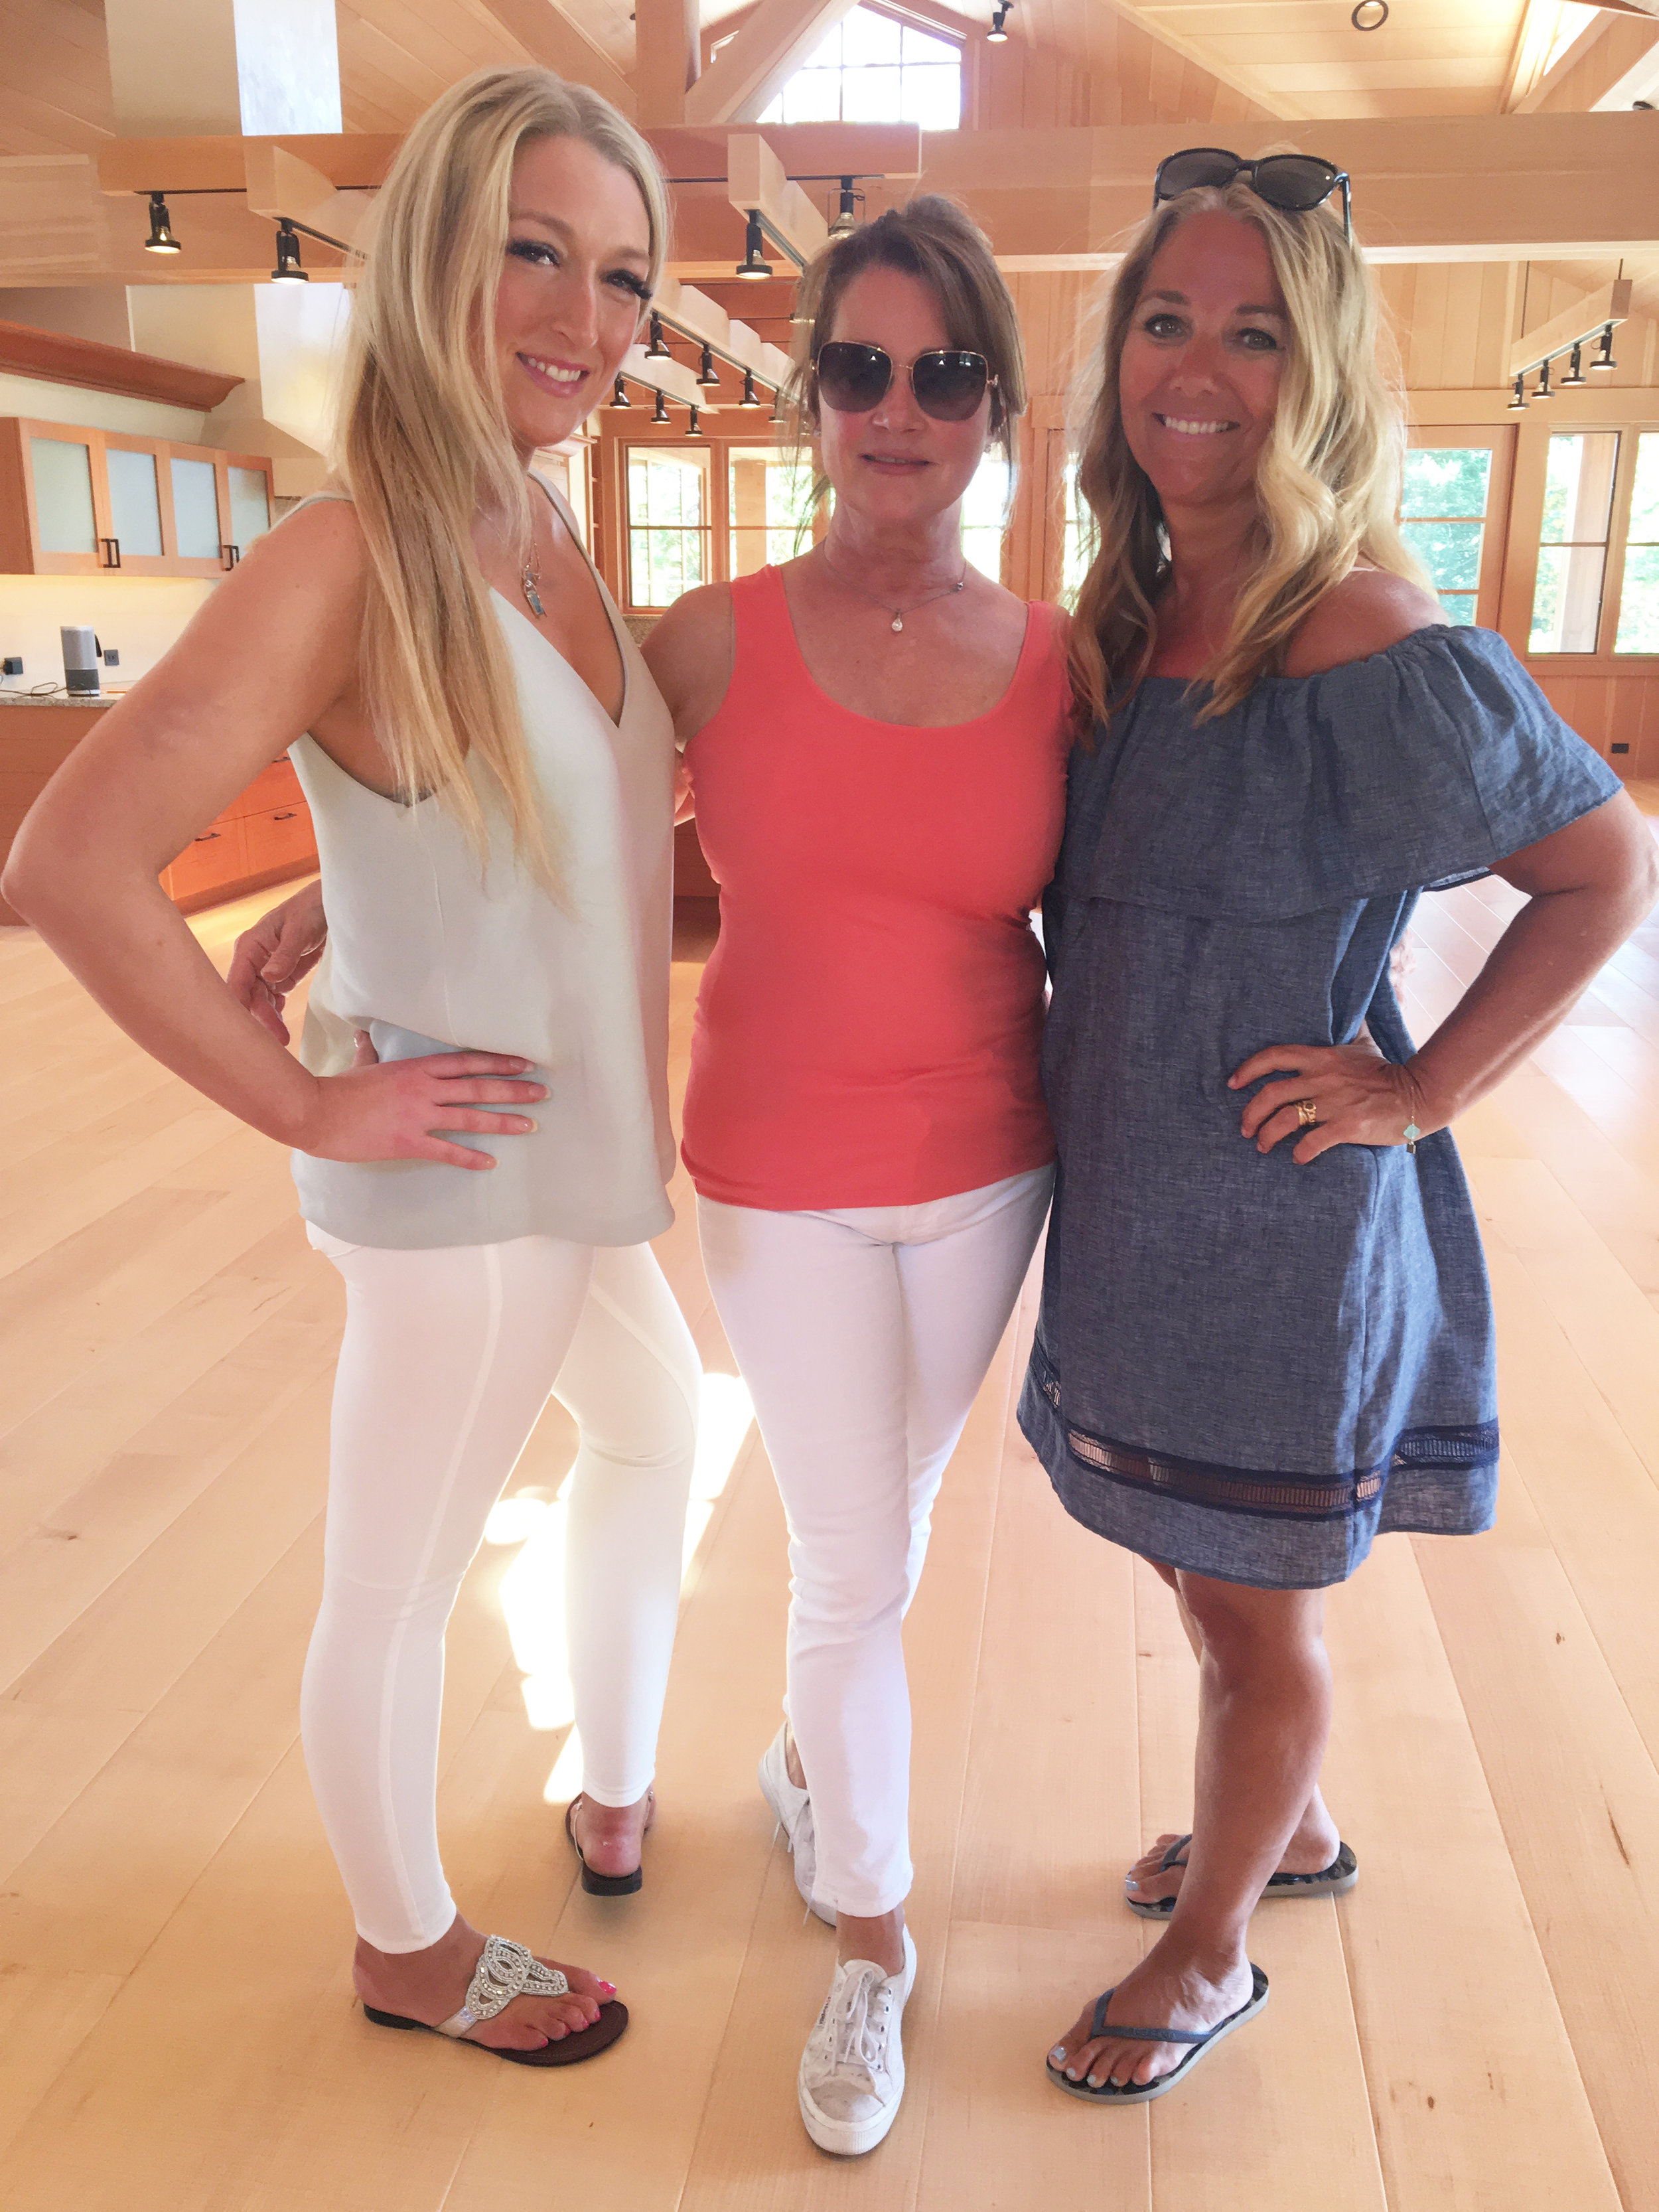 Mary Norris (center) & Paige Norris (left) welcomed rendezvous guests to the main home at Friday Harbor Estate.